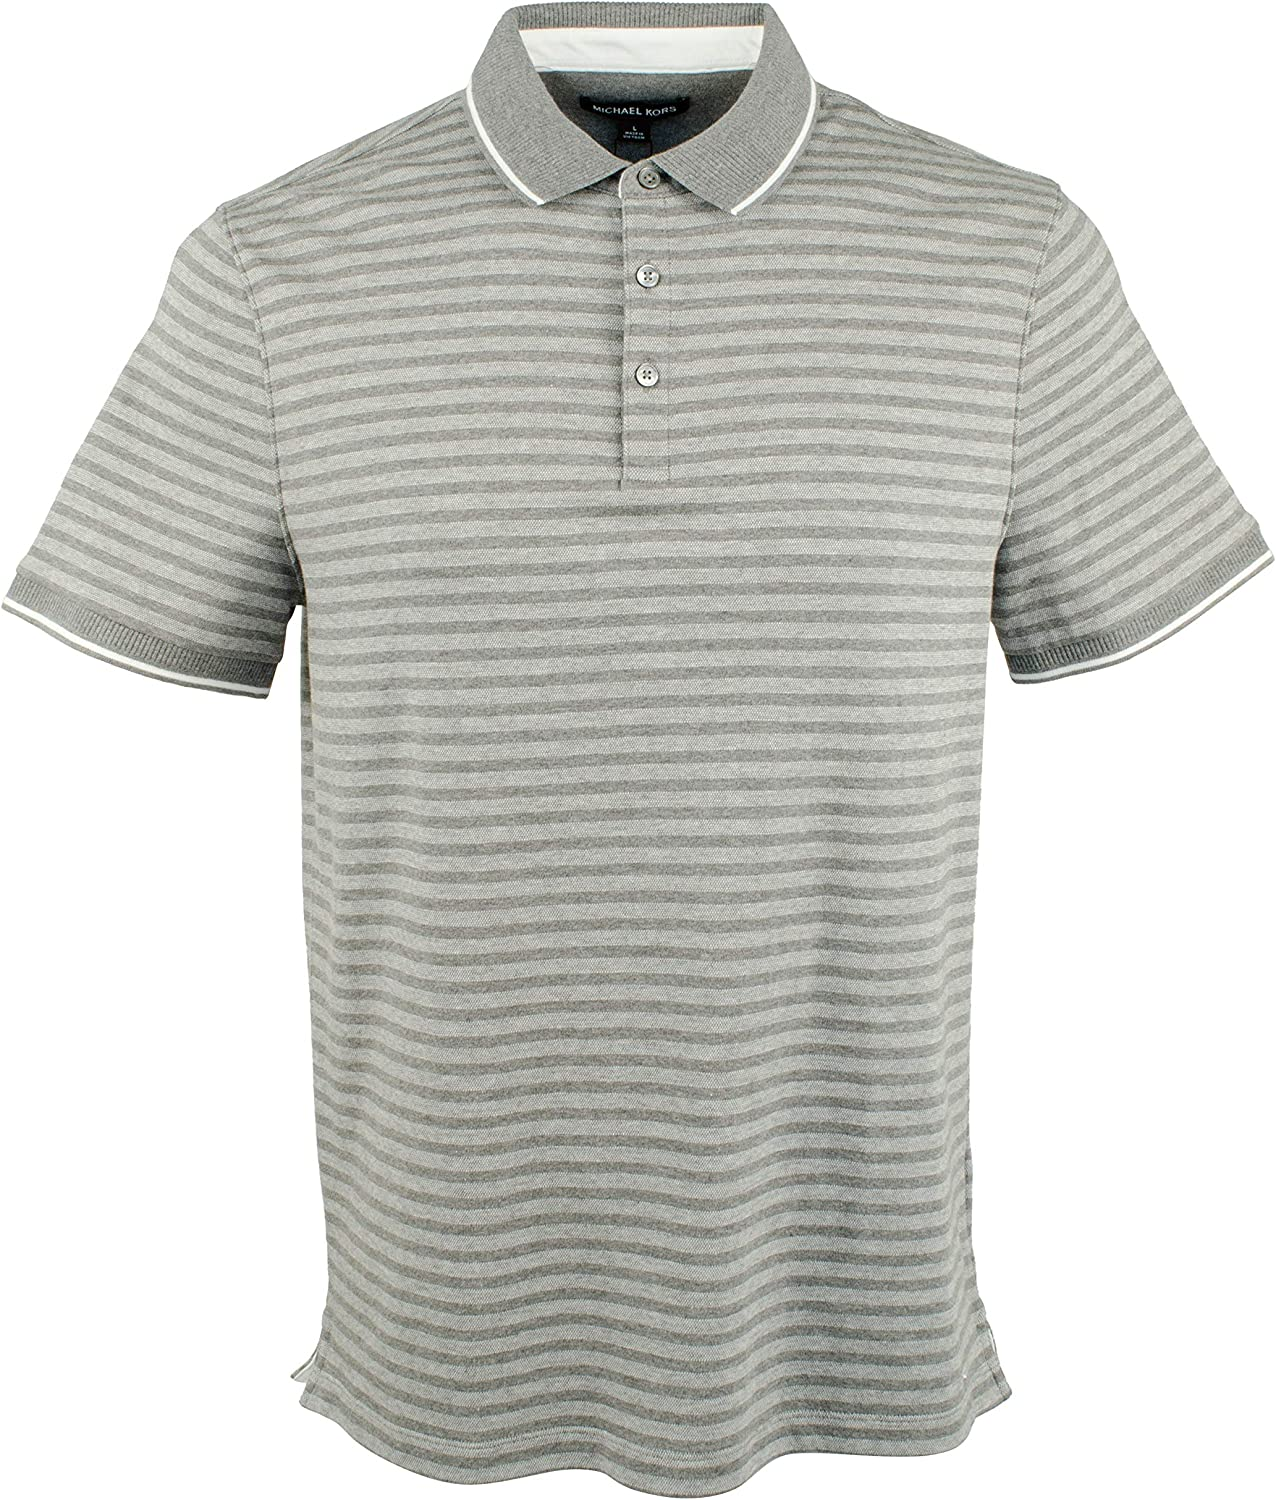 Max 53% OFF Michael Kors Men's Lyocell Sale special price Striped Shirt Polo